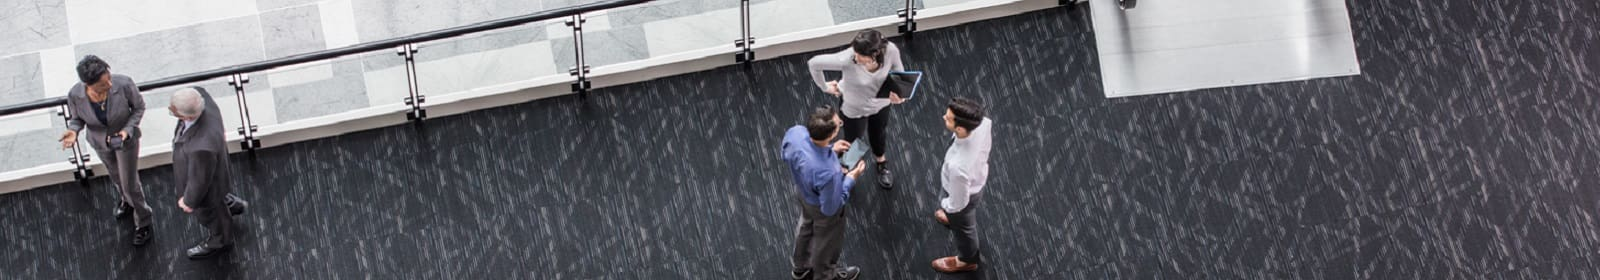 Employees chat on an elevated walkway in an office building